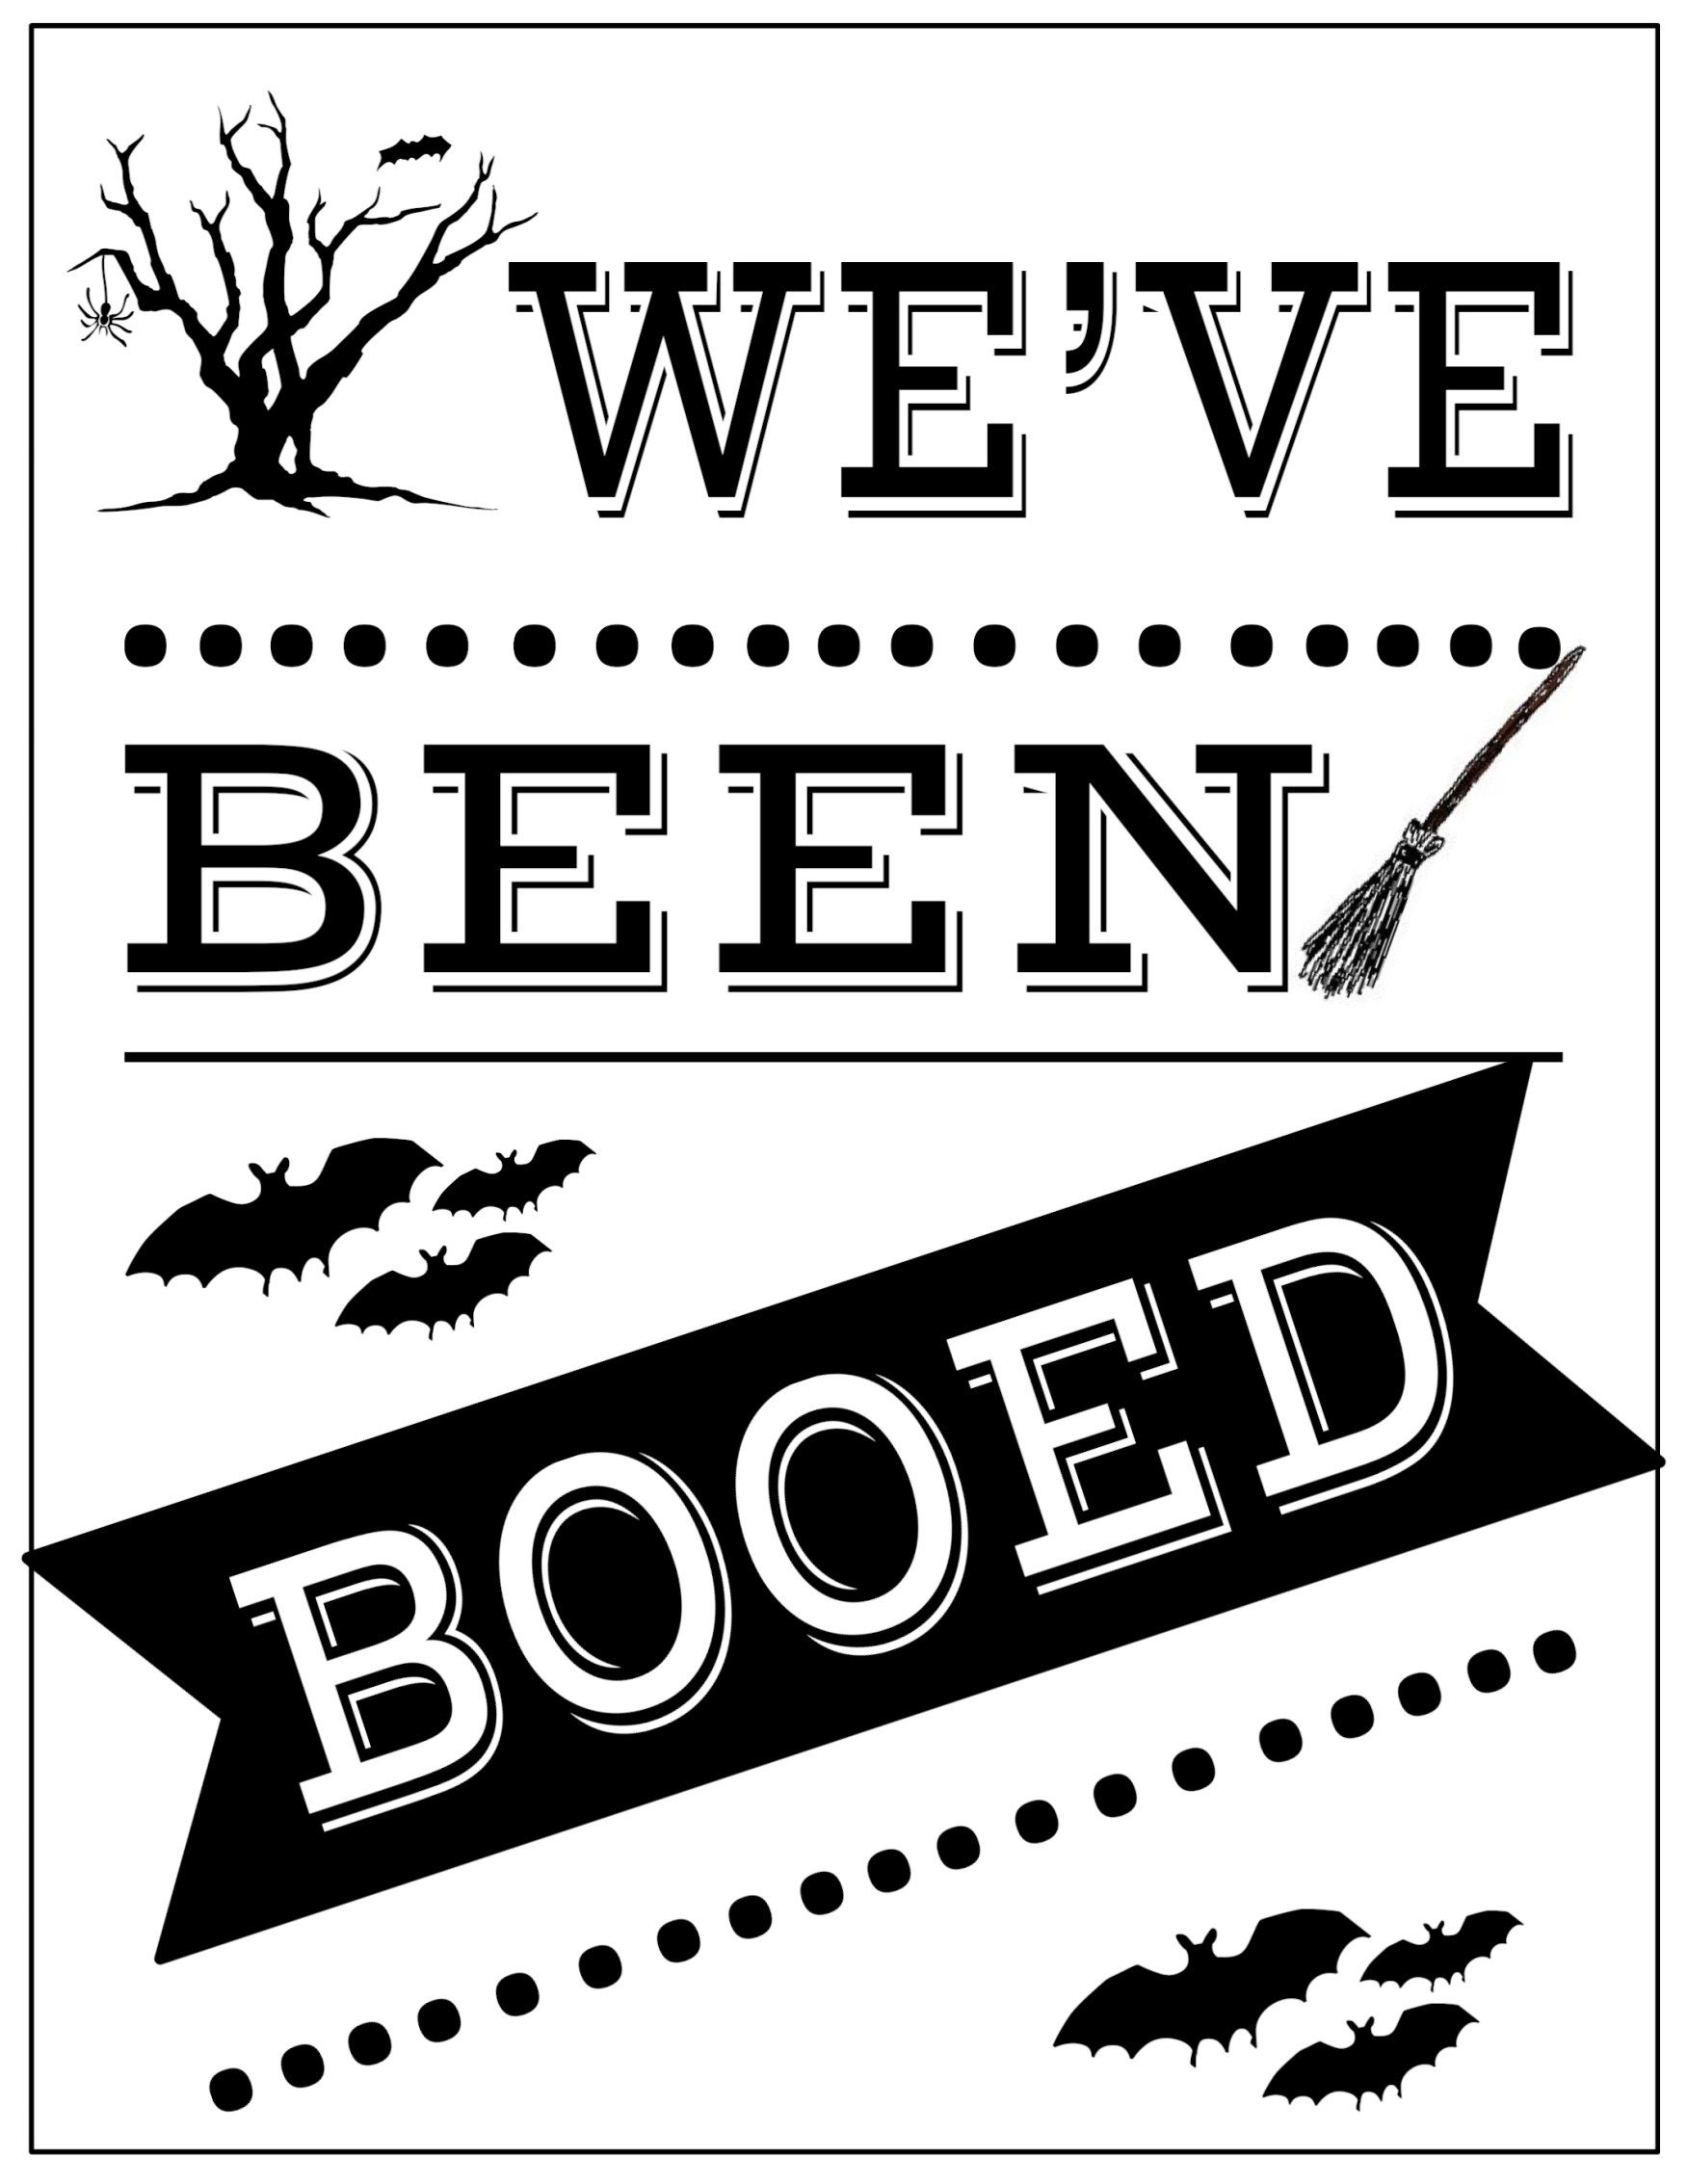 You've Been Booed Free Printable Signs | Holiday And Party Ideas - We Ve Been Booed Free Printable